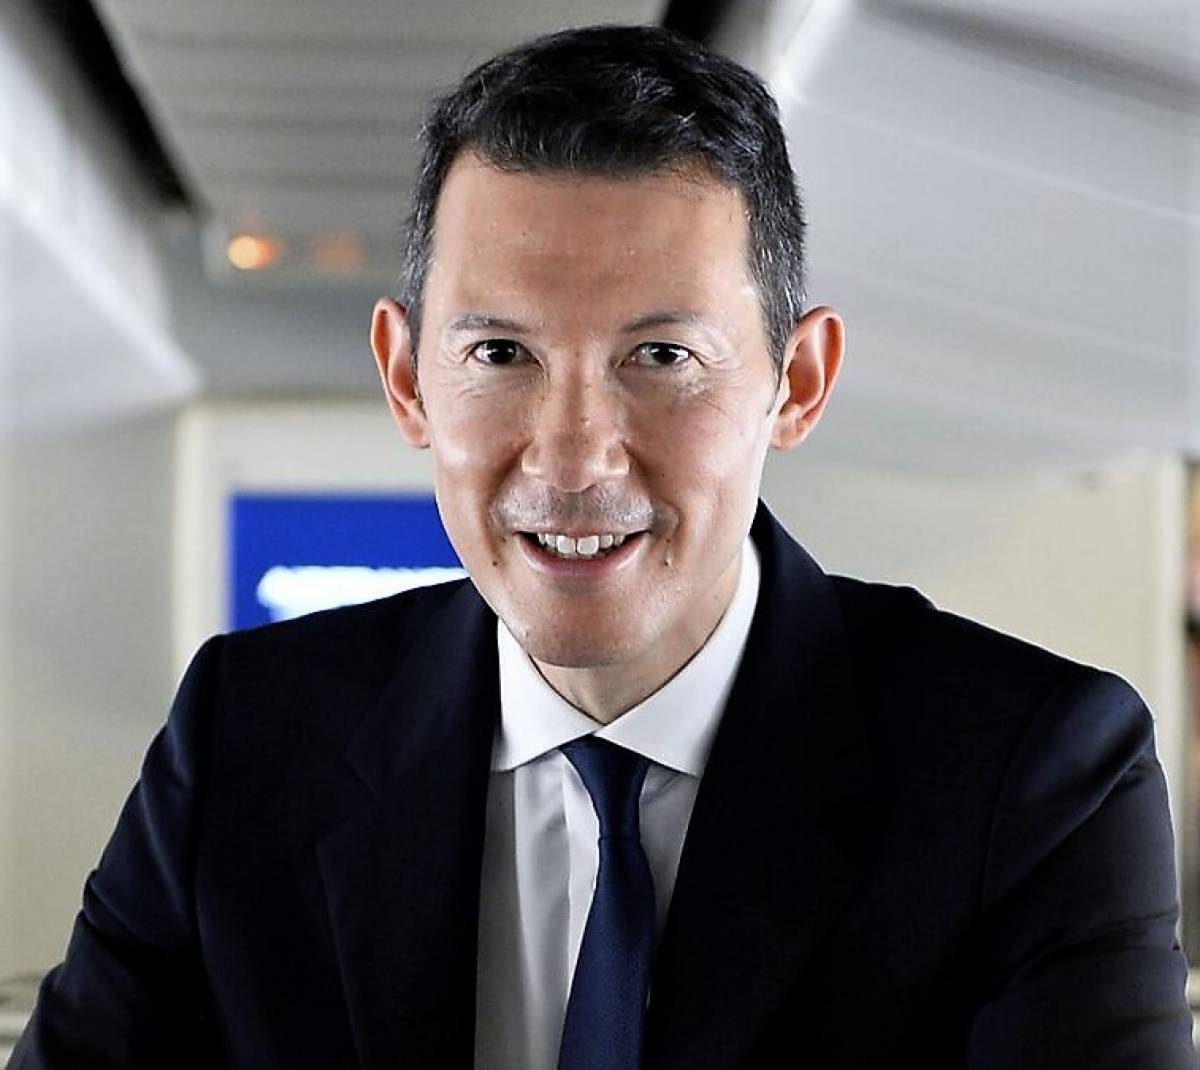 Airline CEOs to Address Major Industry Event